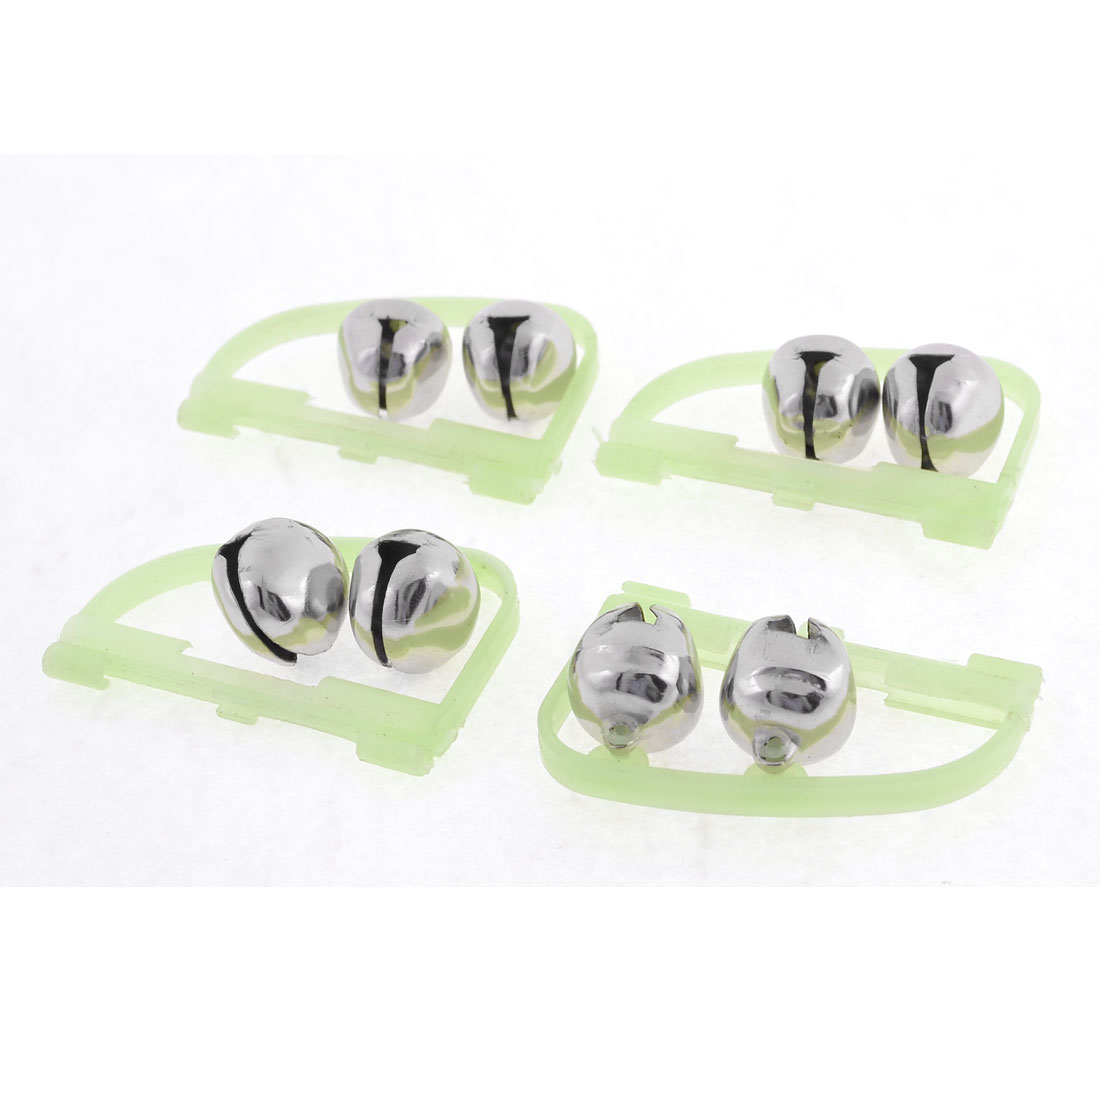 Plastic Ring Double Bells Fluorescent Fishing Alarm Tool Silver Tone Green 4 Pcs